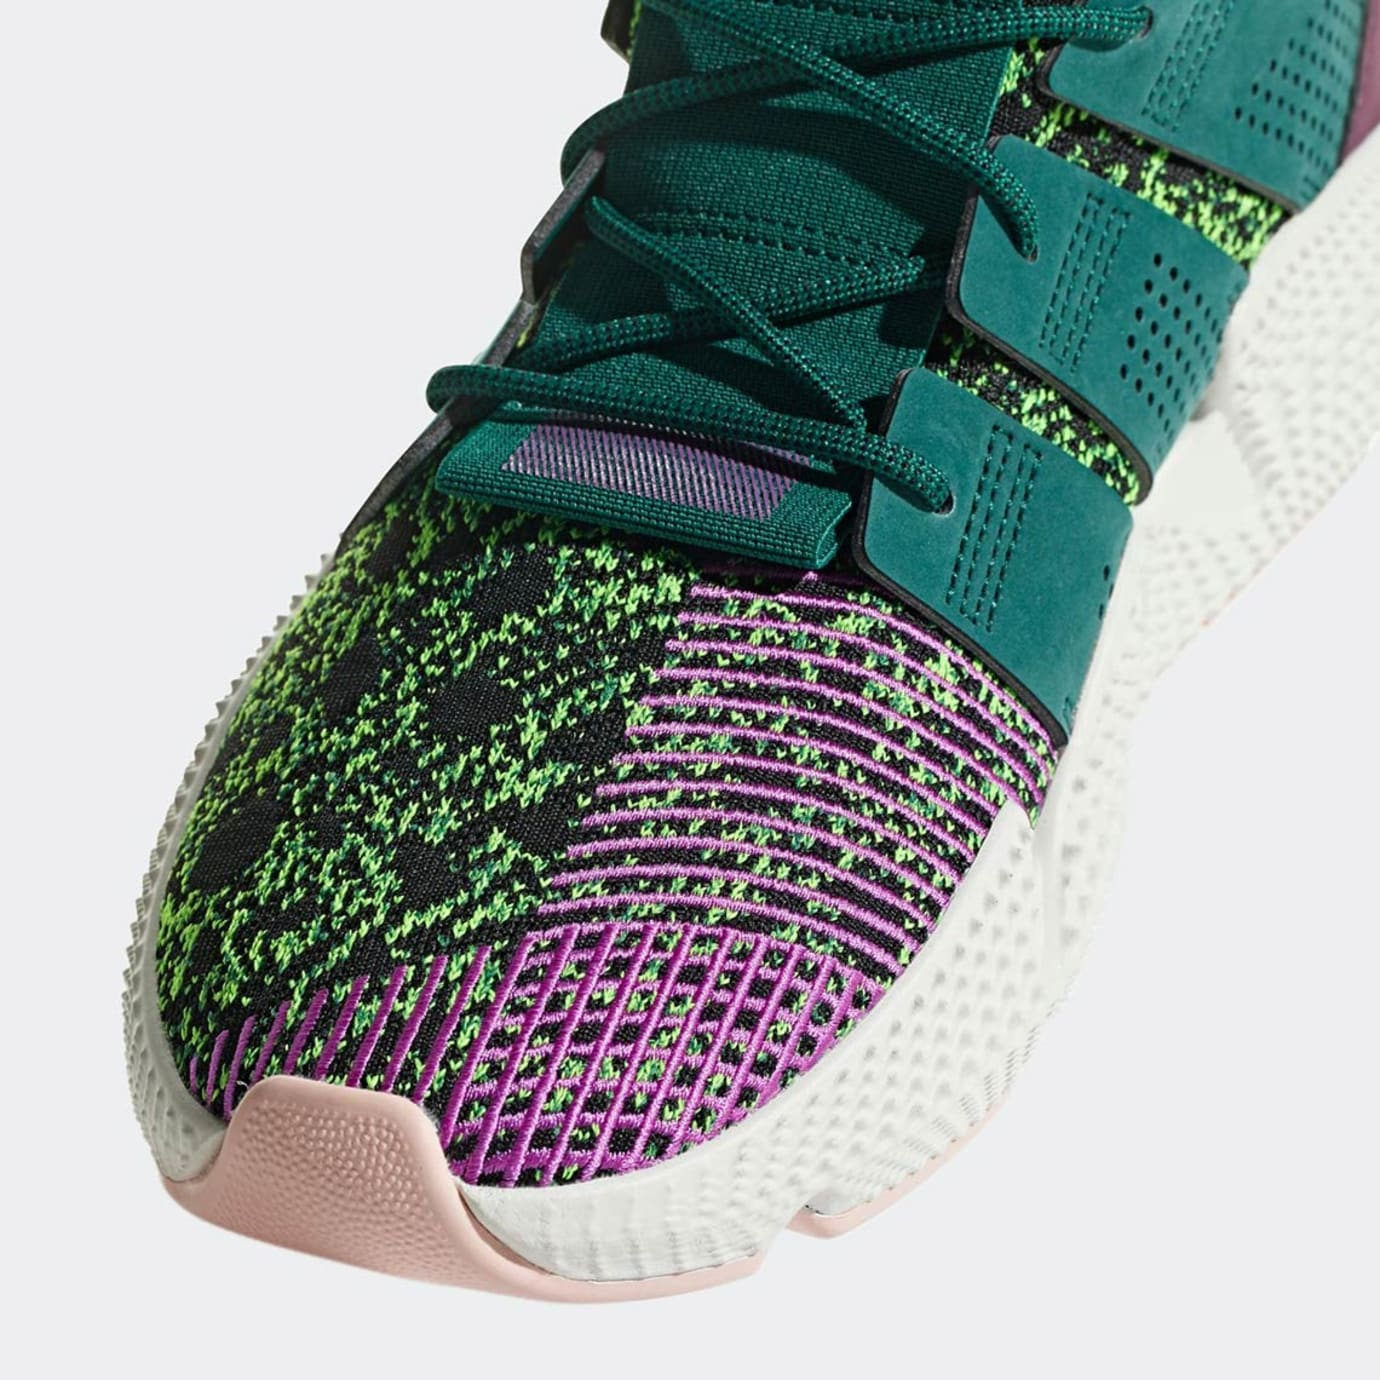 pretty nice d10e7 717d6 Image via Adidas Dragon Ball Z x Adidas Prophere Cell Release Date D97053  Toe